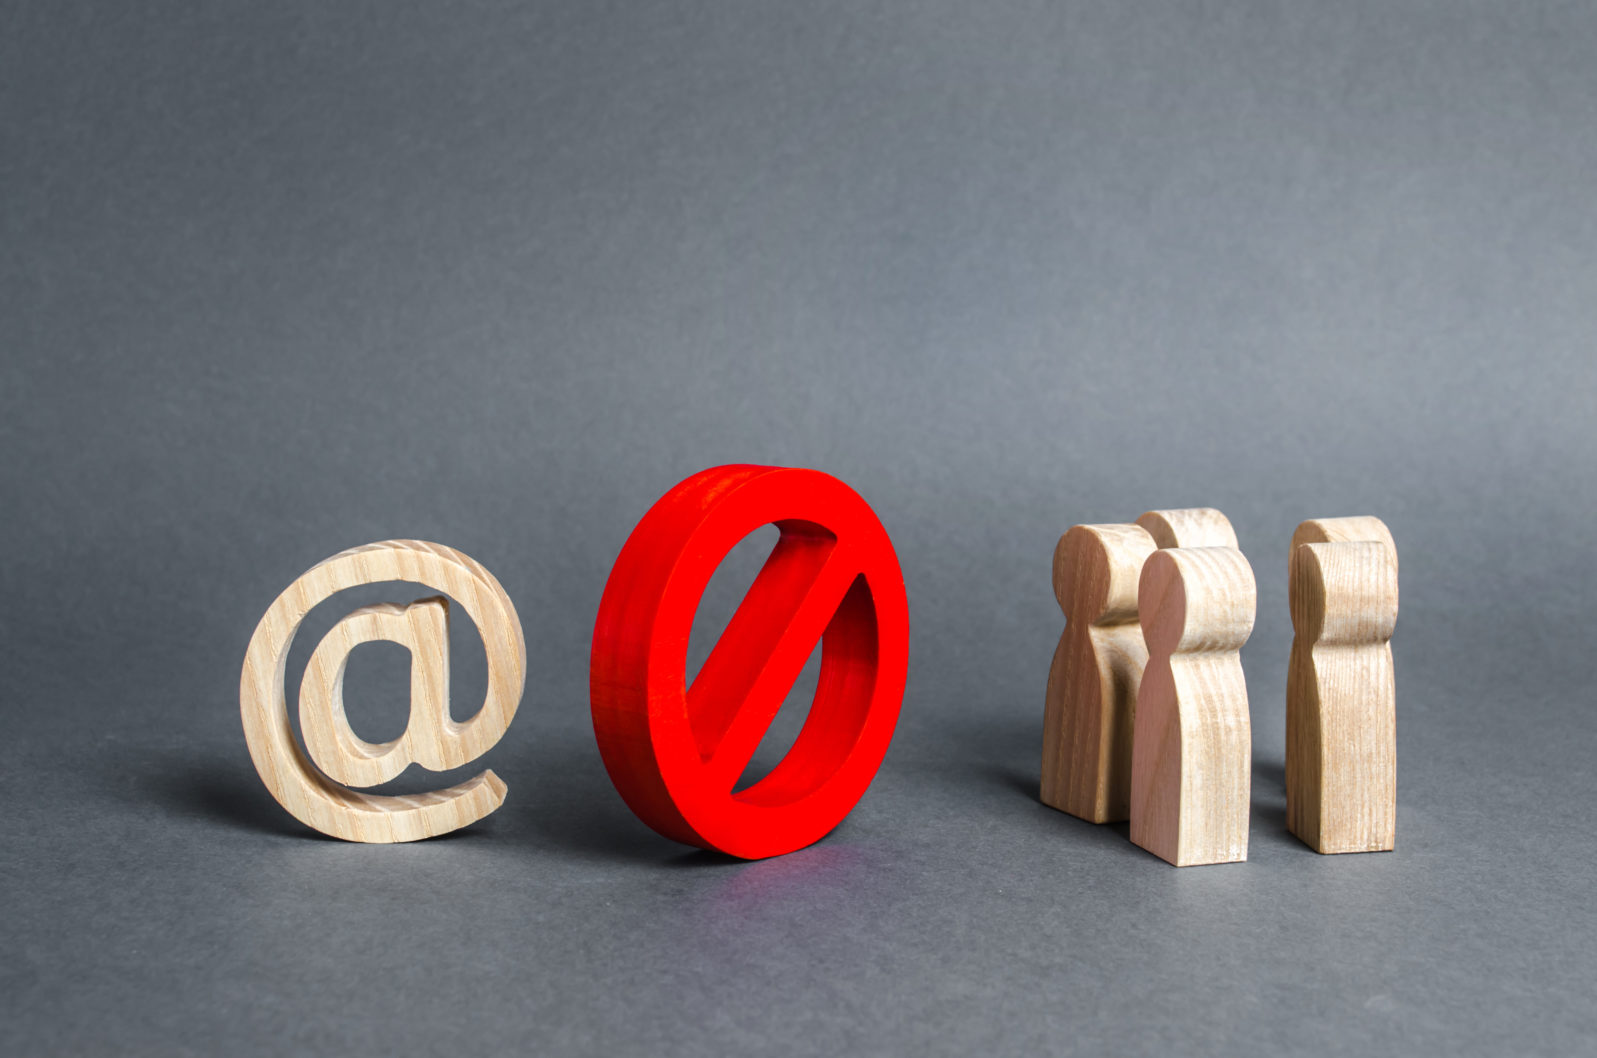 An internet email symbol and a group of people are separated by a red prohibitory symbol No. restrictions on access to the global Internet. Censorship. Information control, society isolation policy